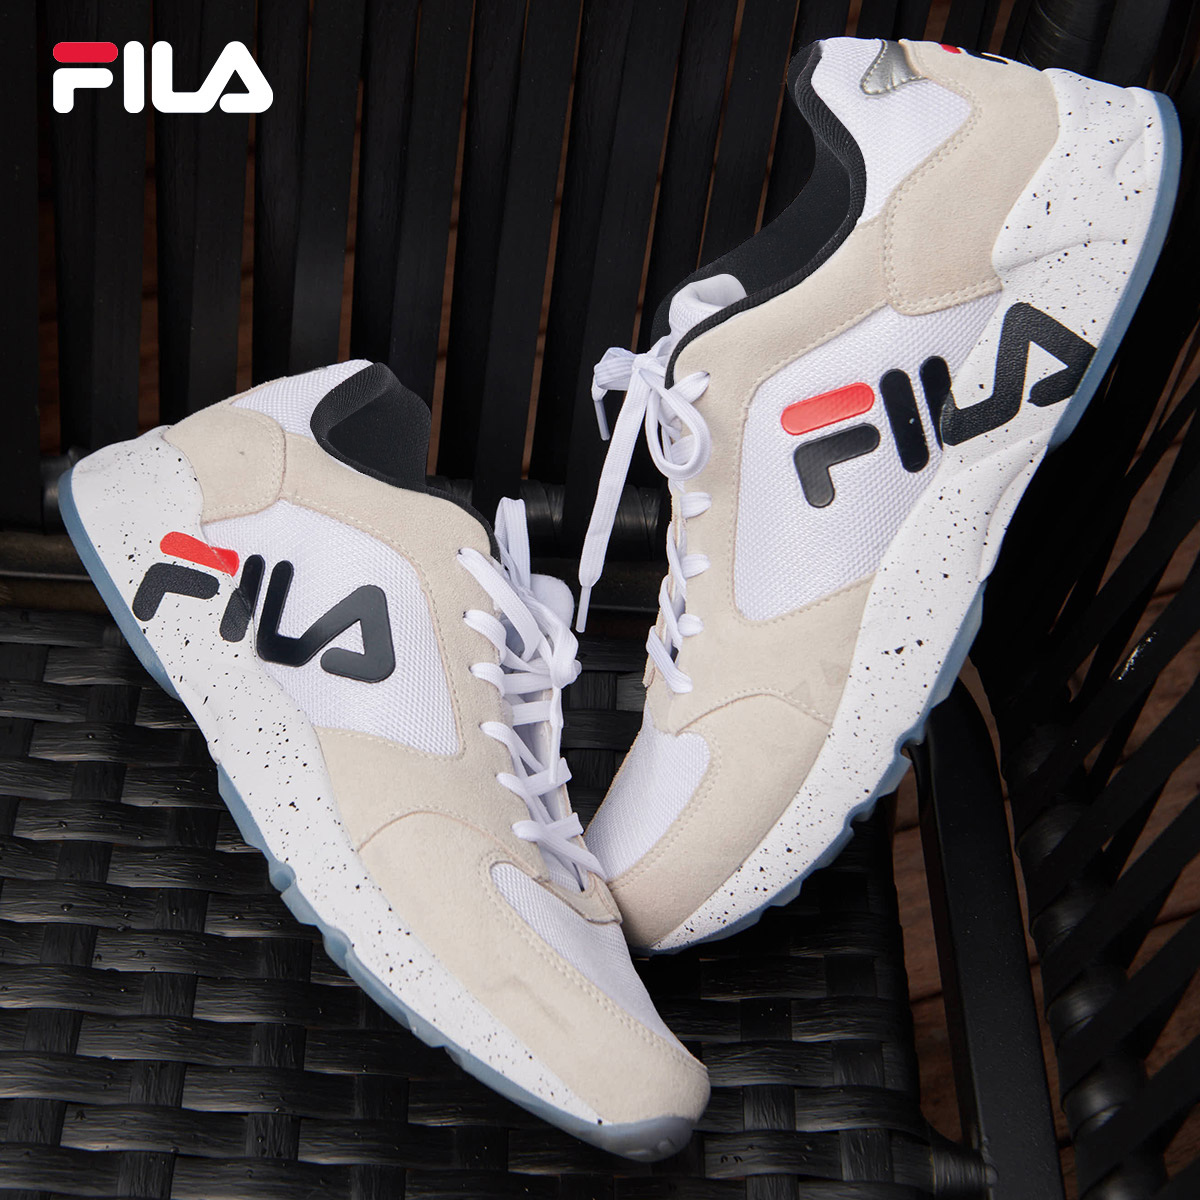 USD 231.79] FILA music genuine MIND BENDER sports casual